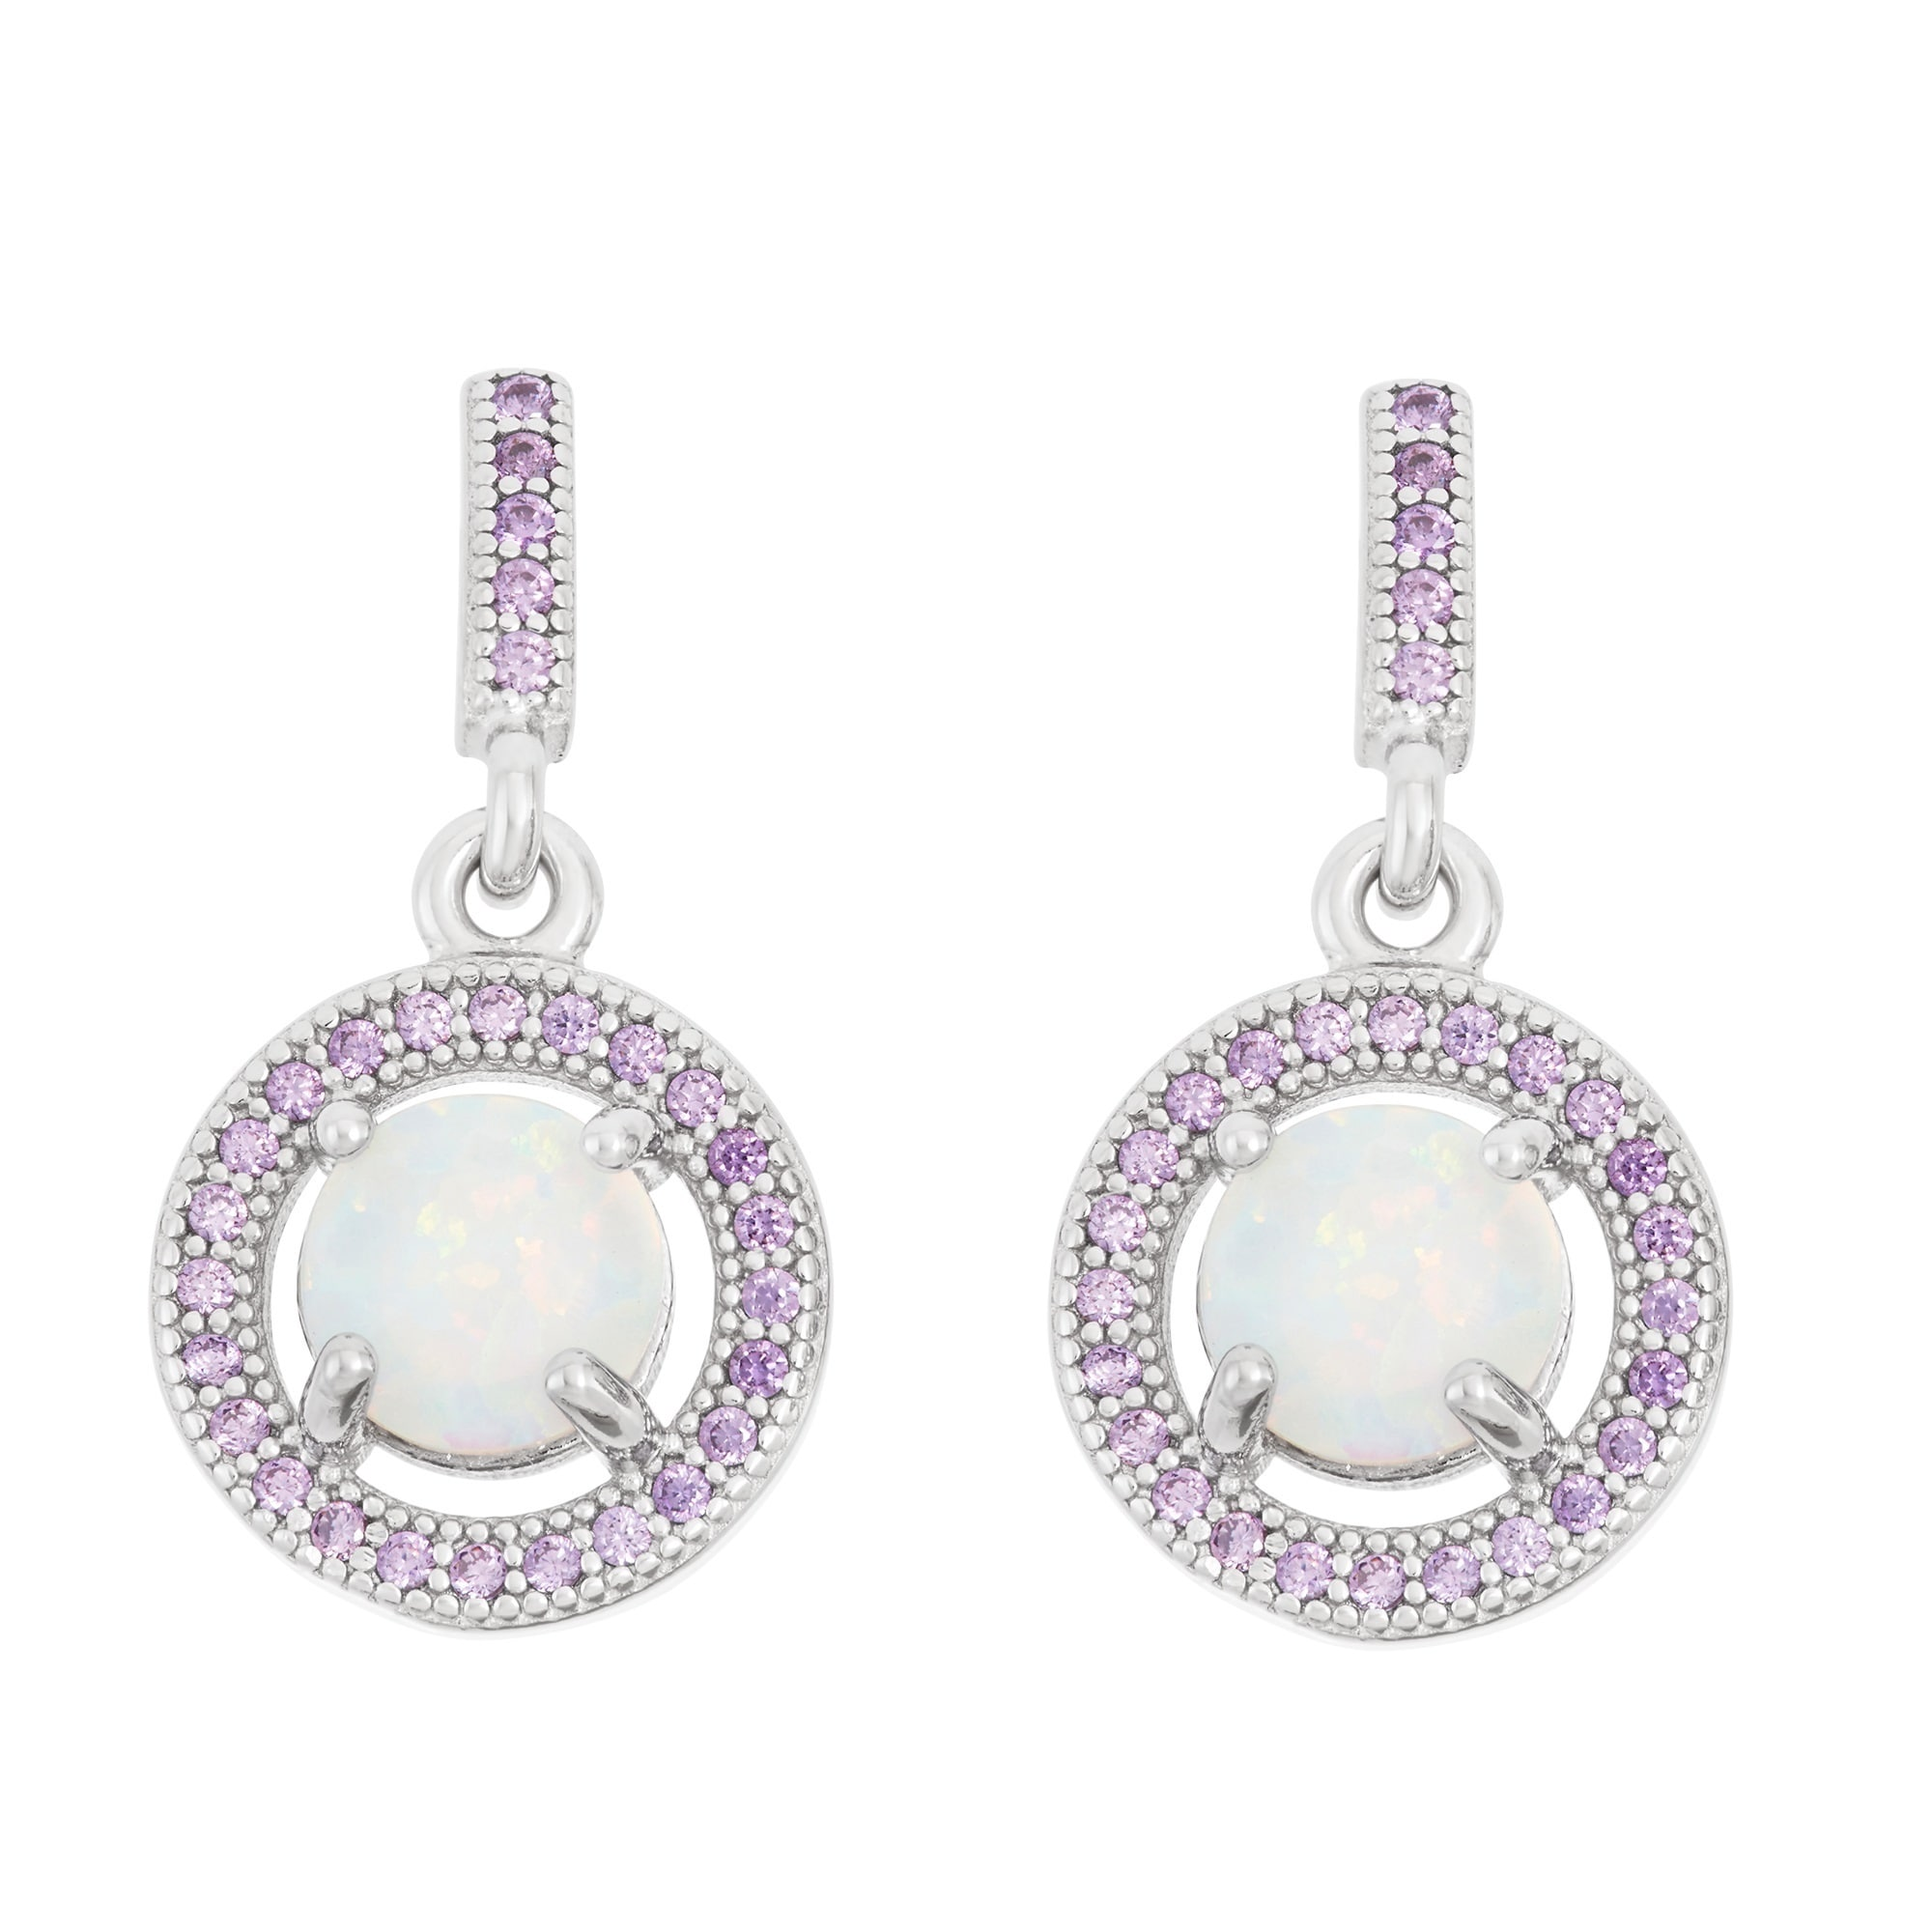 La Preciosa Sterling Silver White Opal And Purple Cubic Zirconia Earrings On Free Shipping Orders Over 45 10745517